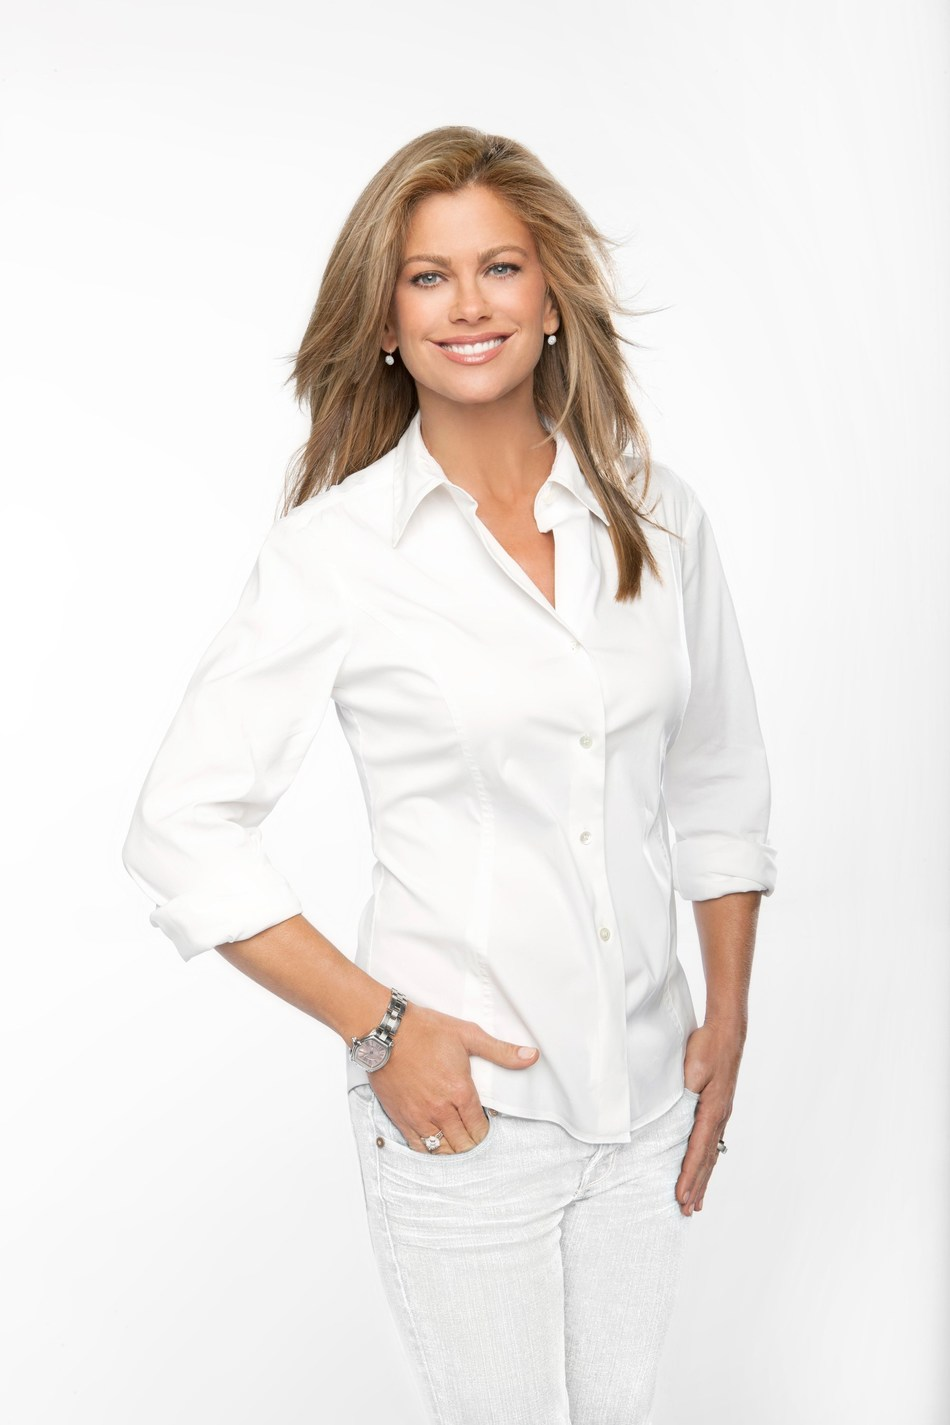 Kathy Ireland, Chair, CEO and Chief Designer of kiWW®